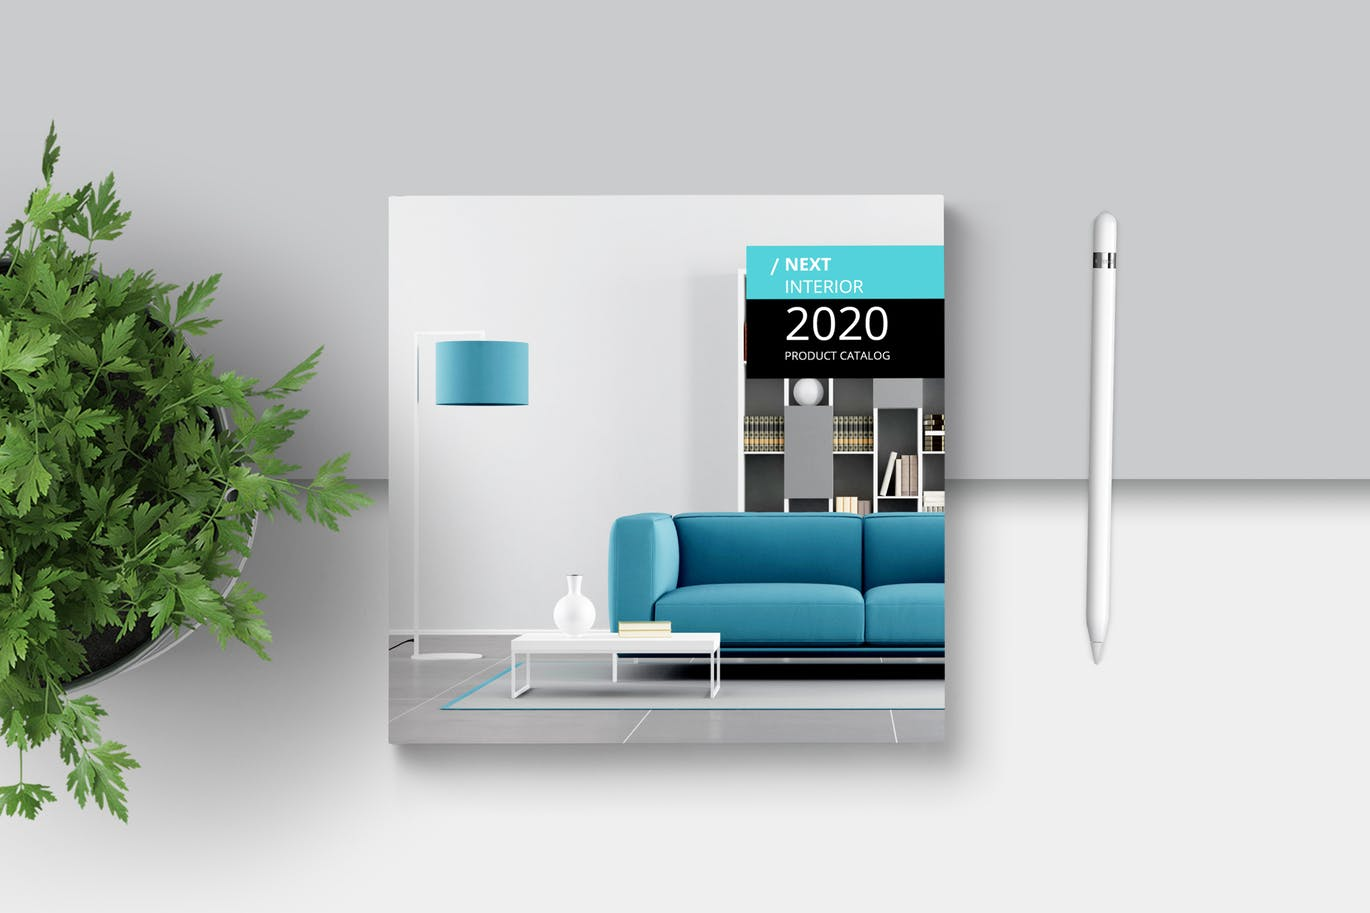 30 Clean Interior Furniture Catalog Templates For Your Business Decolore Net